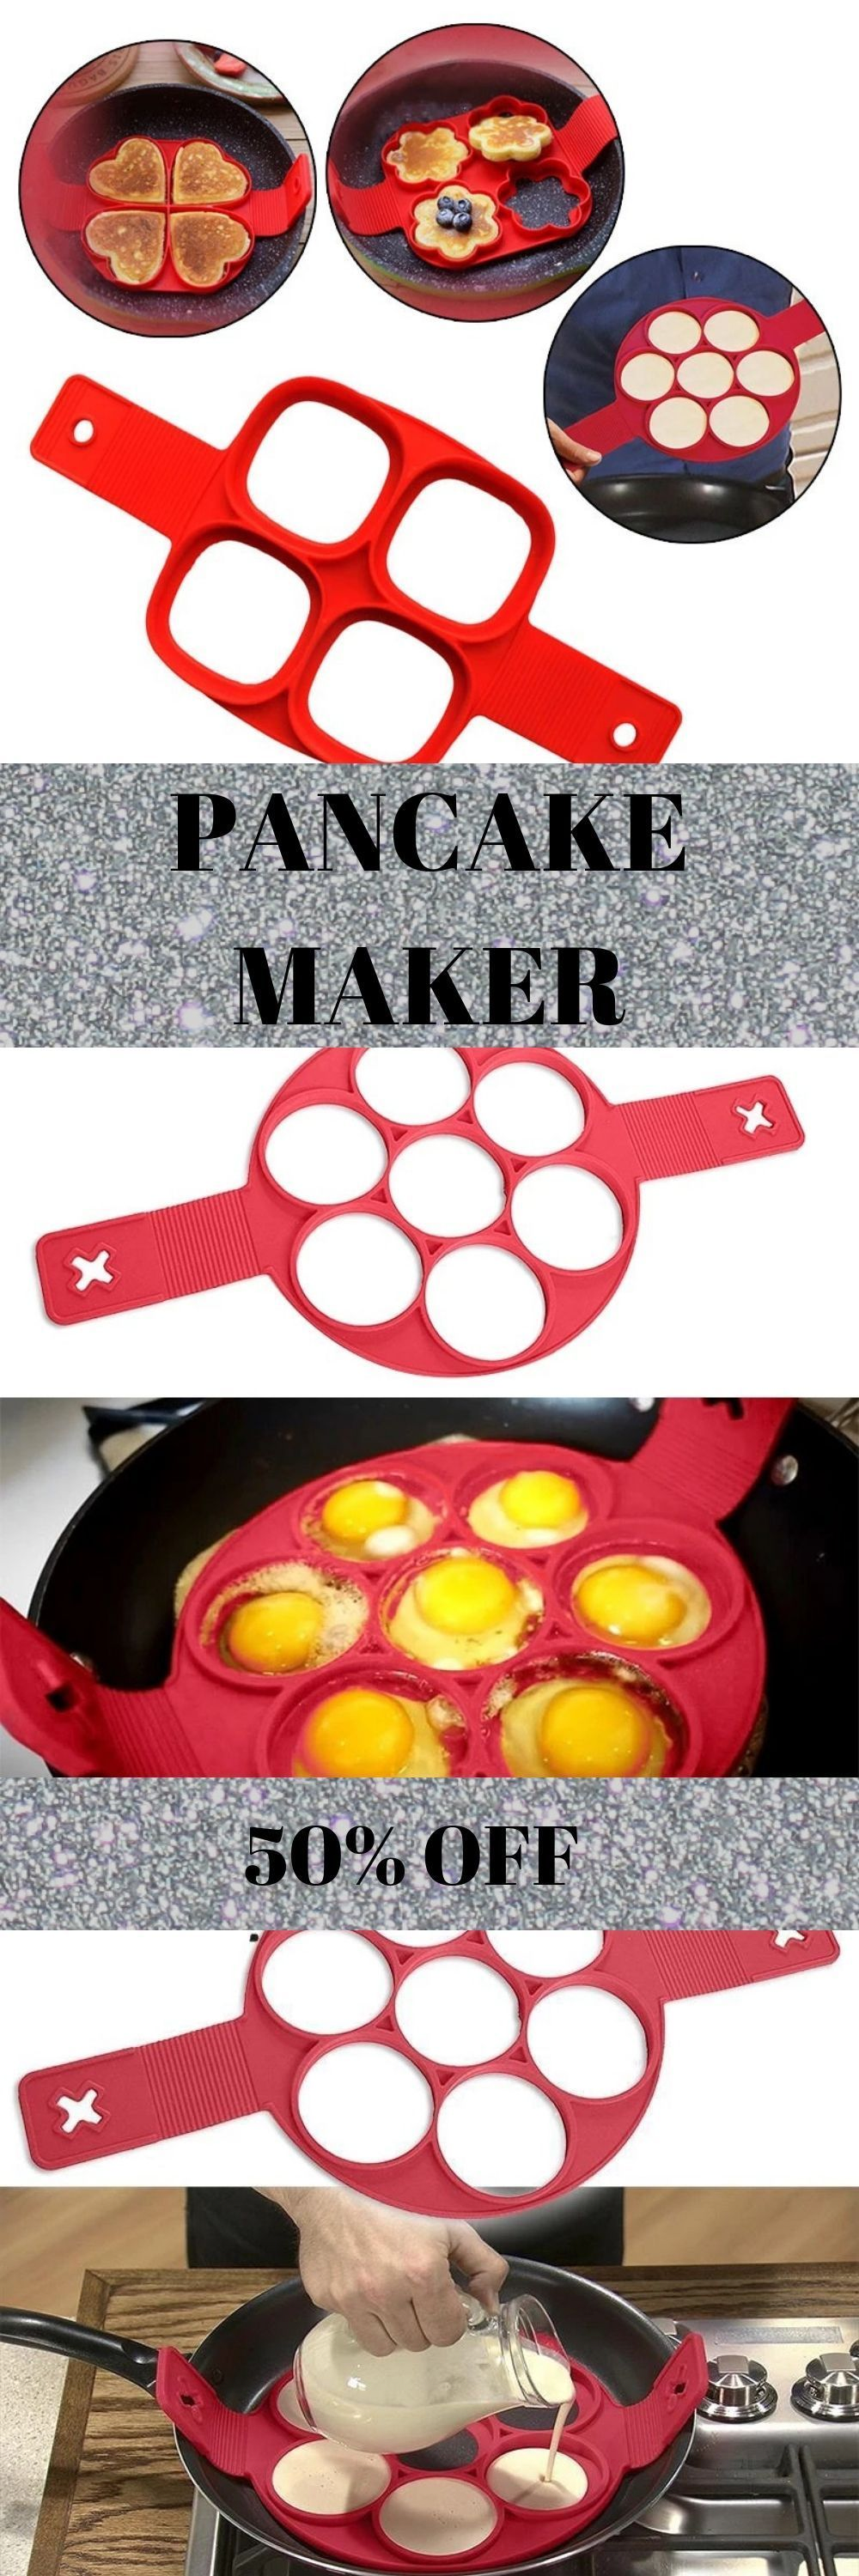 PANCAKE MAKER NONSTICK COOKING TOOL #pancakemaker PANCAKE MAKER NONSTICK COOKING TOOL #pancake #maker #nonstick #cooking #tool Nonstick Pancake Maker. Pancake Maker Nonstick Cooking Tool Egg Ring Maker Pancakes Cheese Egg Cooker Pan Flip Eggs Mold Kitchen.Pancake Maker Nonstick Cooking Tool. #pancakemaker